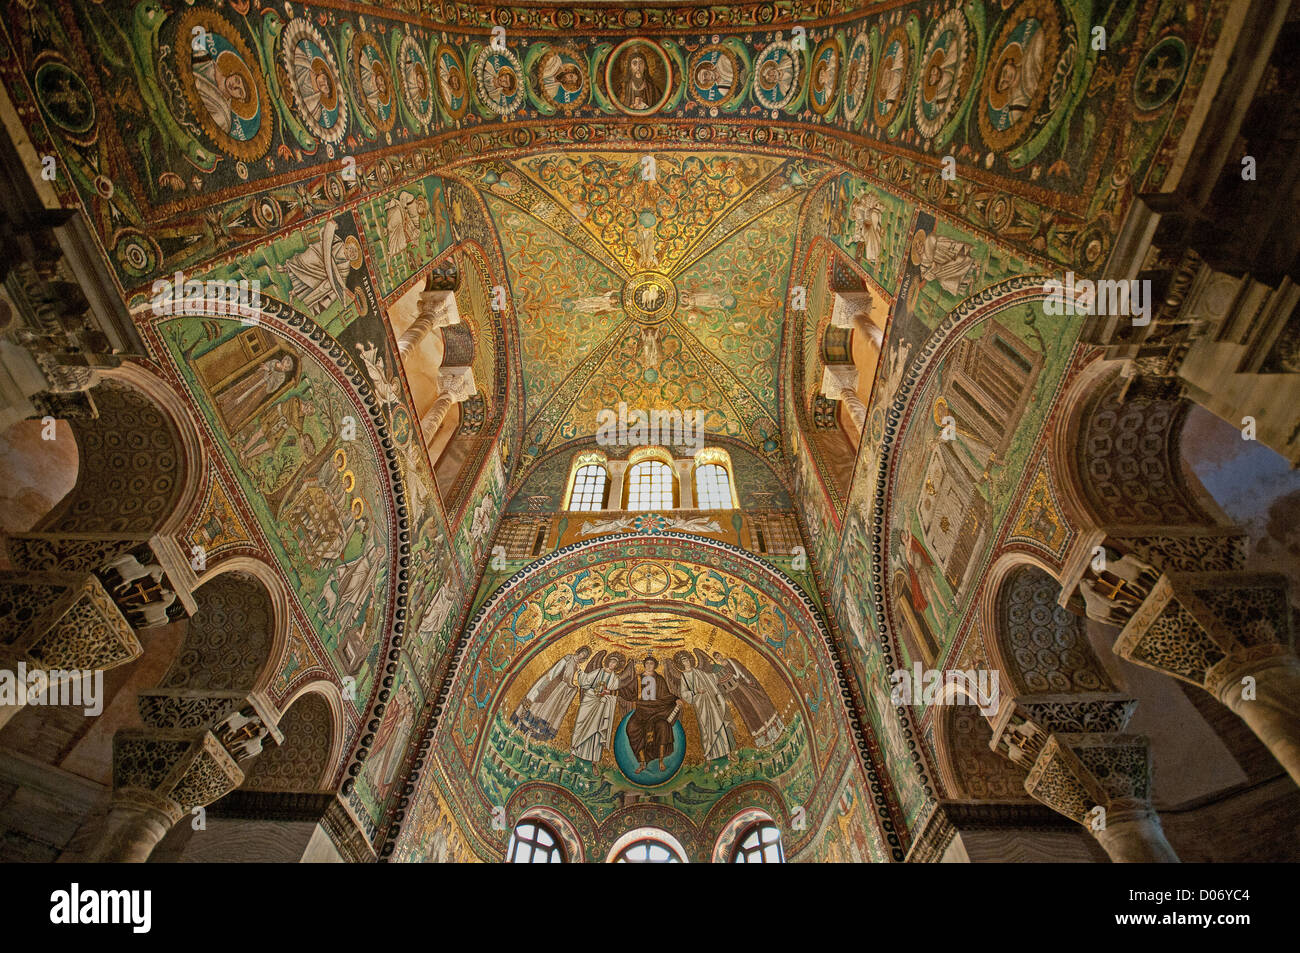 an examination of the mosaics of san vitale 4 days ago  the vi century basilica of san vitale in ravenna is a unique example  brought  in to help with scientific advice, industrial design and analysis.